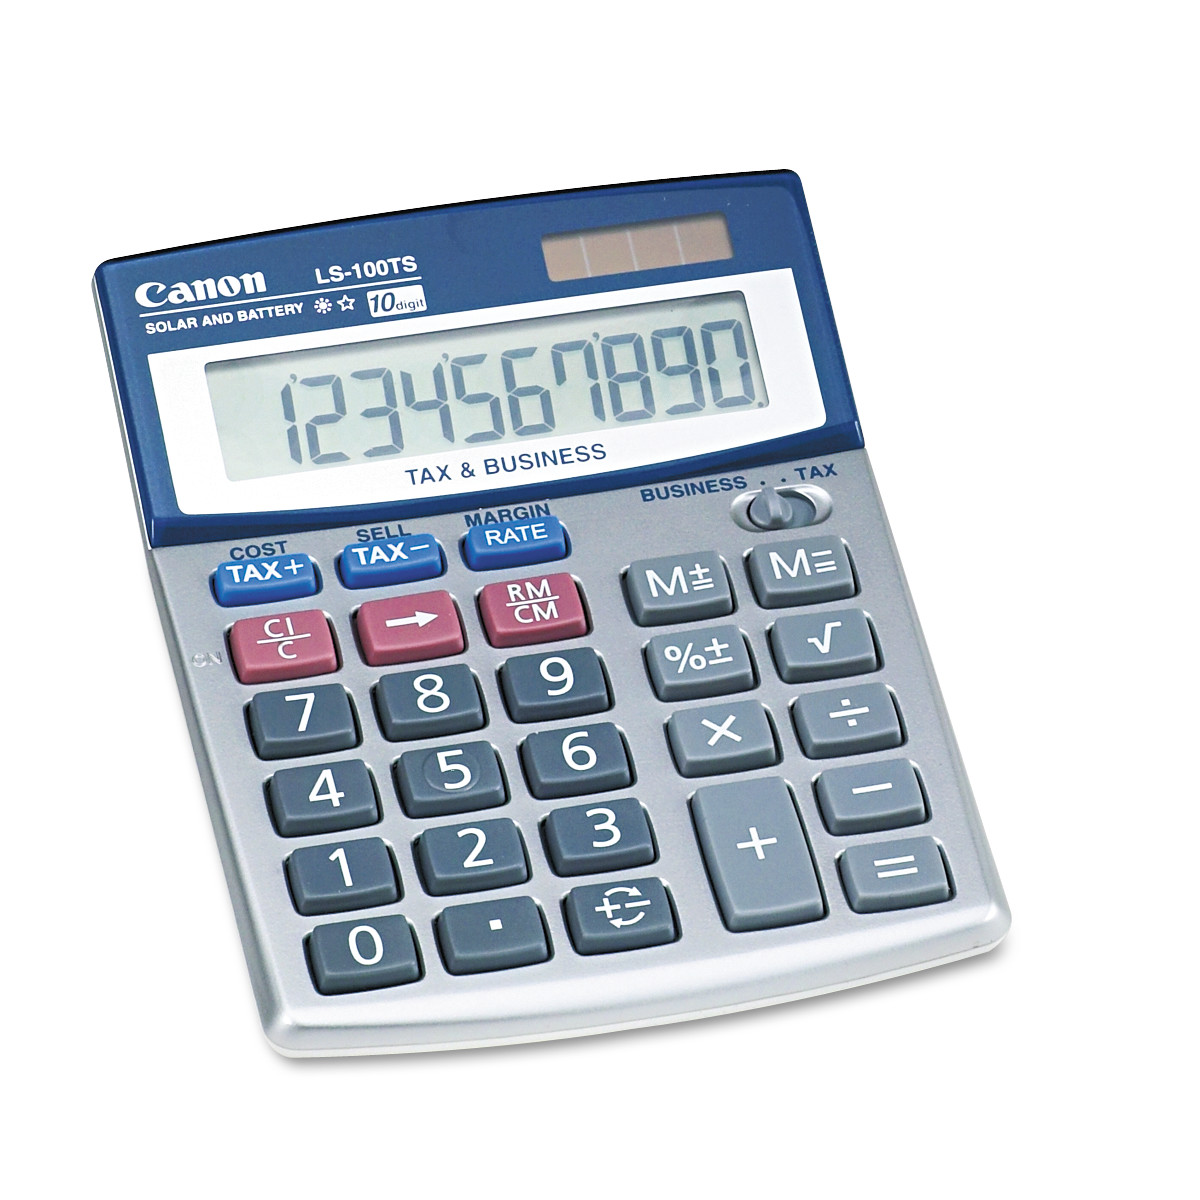 Canon LS100TS Desktop Calculator, 1 Each (Quantity) by Canon, Inc